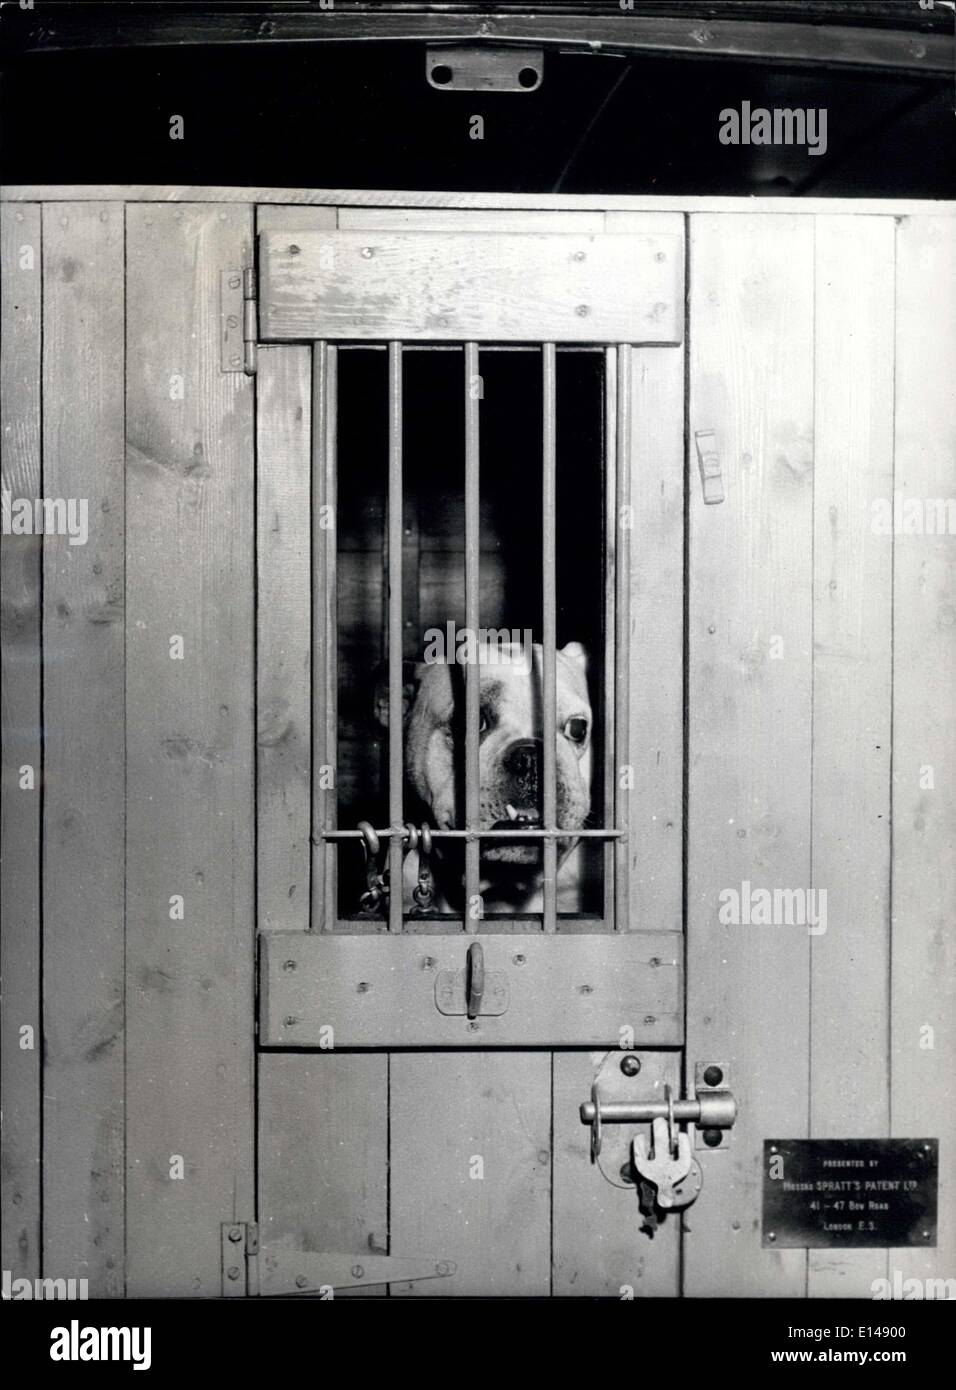 Apr. 17, 2012 - Chung is safe 'behind bars' until he is returned to his home and  owners: In the tailgger's lost dog service van, three is warm, comfortable a accommodation for several lost pets. - Stock Image